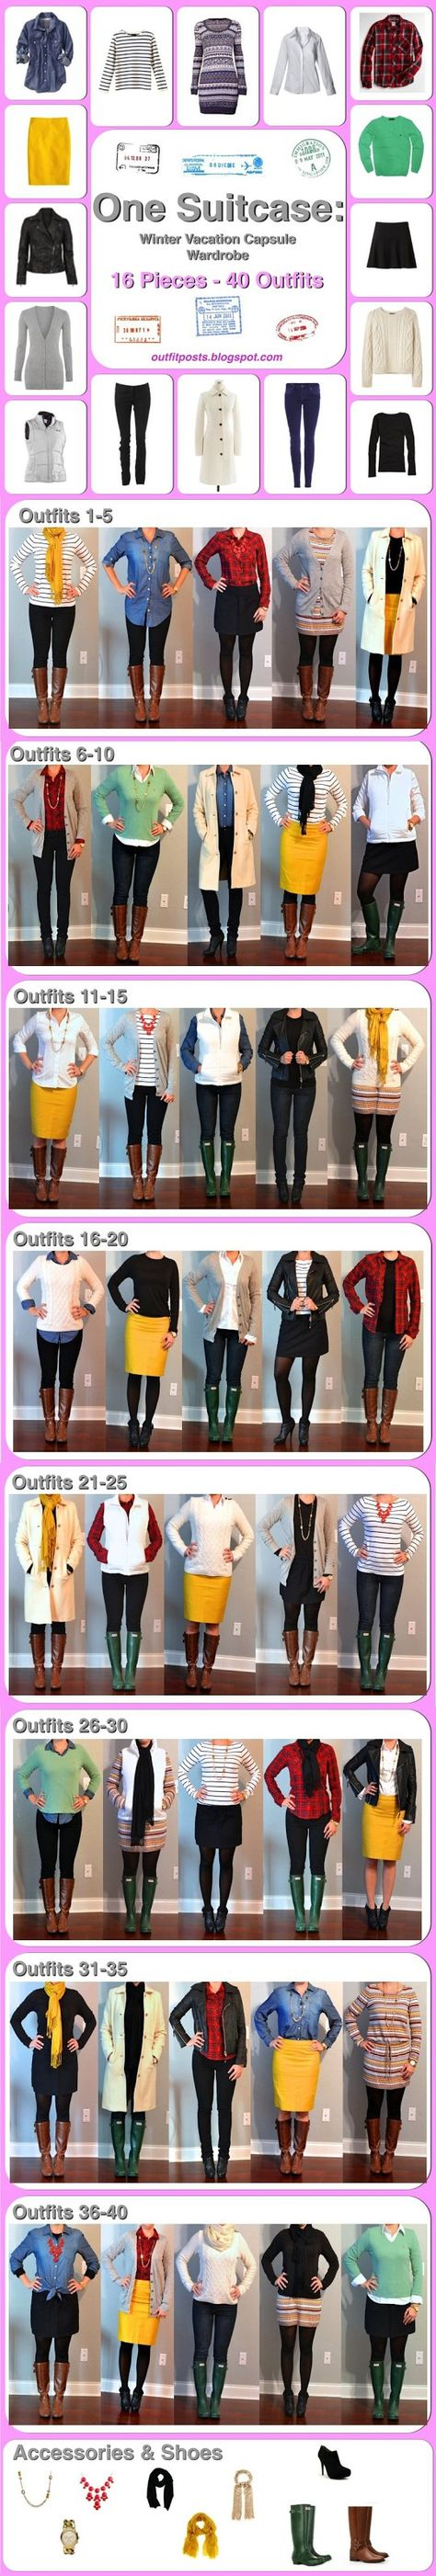 Outfit Posts: one suitcase: winter vacation capsule wardrobe - This is even good for just multi-purposing and stretching your wardrobe!